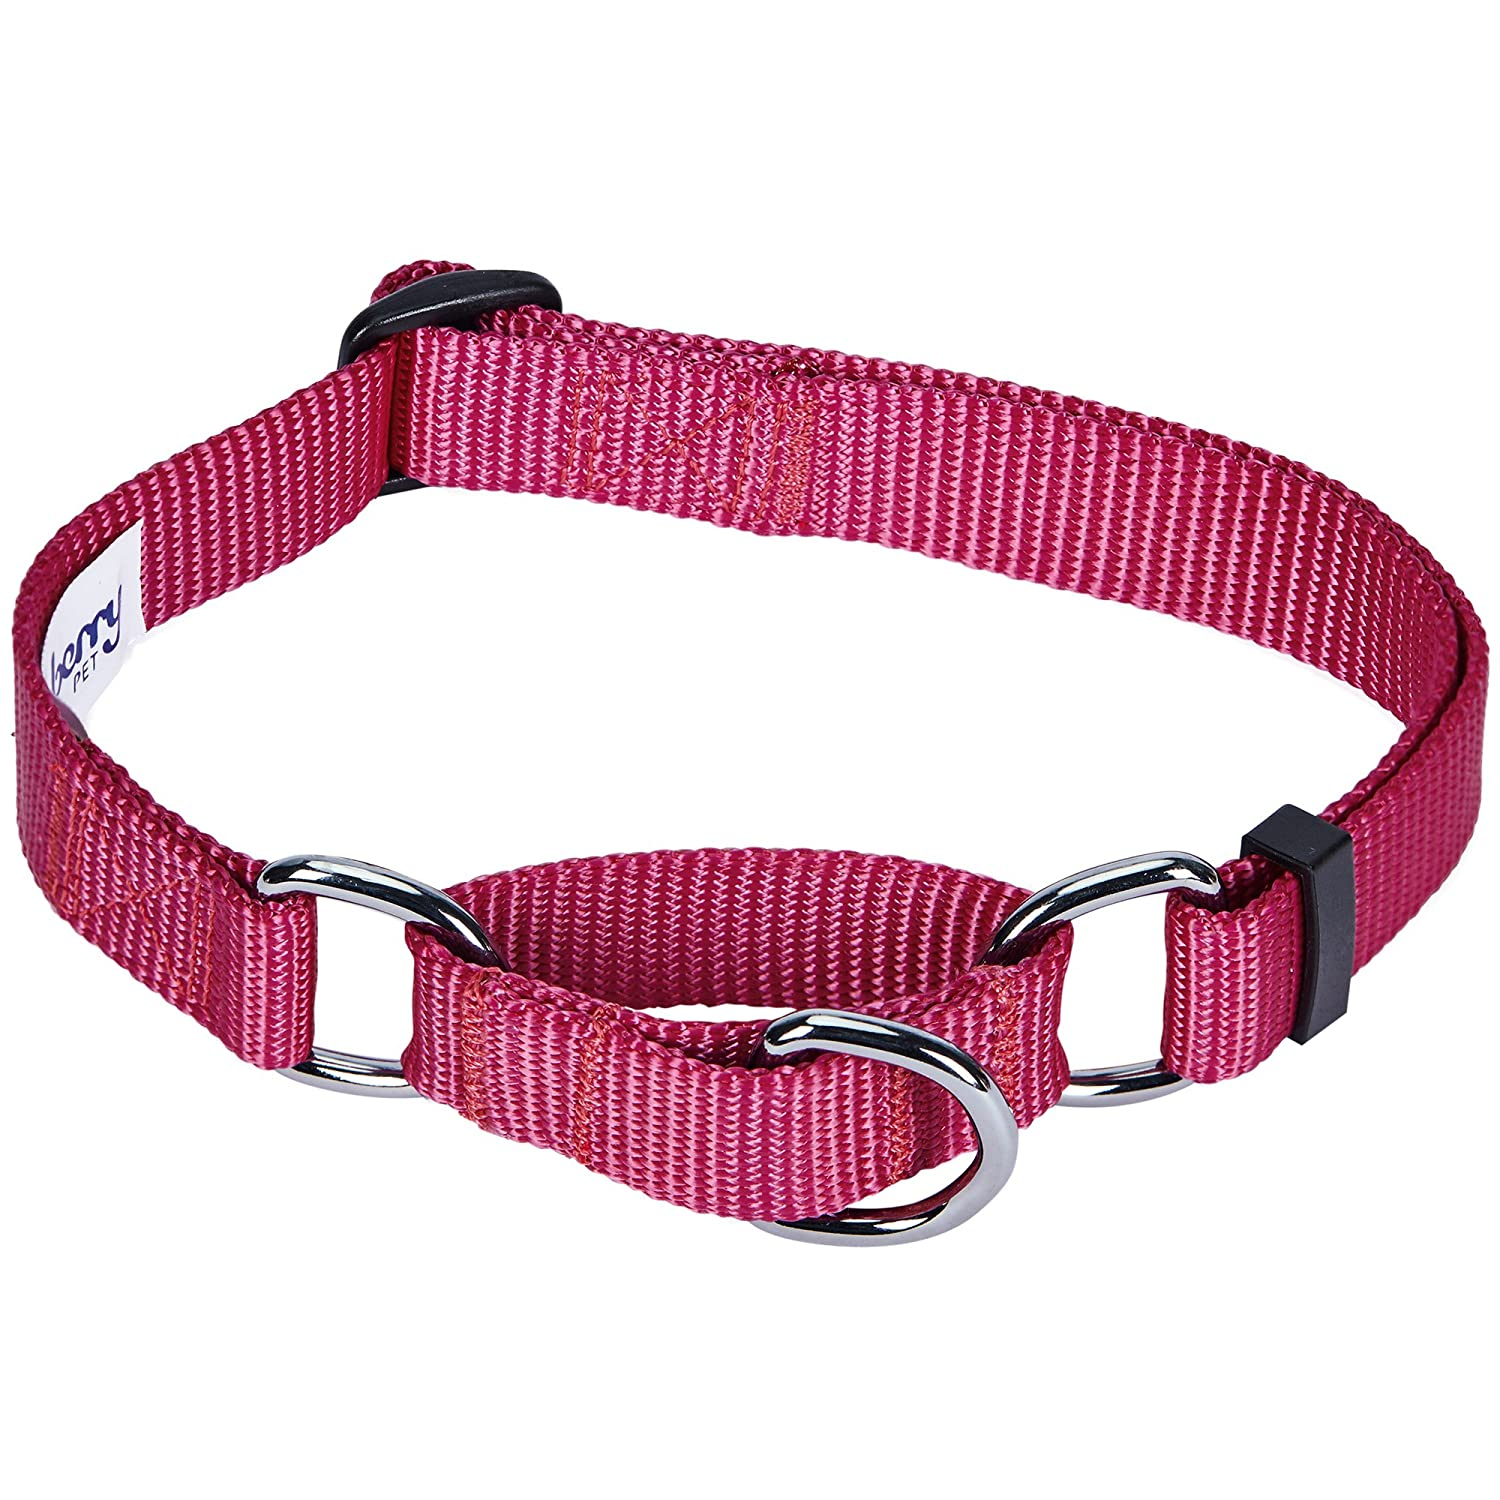 Personalized Collars or Seatbelts Martingale Collars Regular Collars Blueberry Pet Classic Solid Color Collection